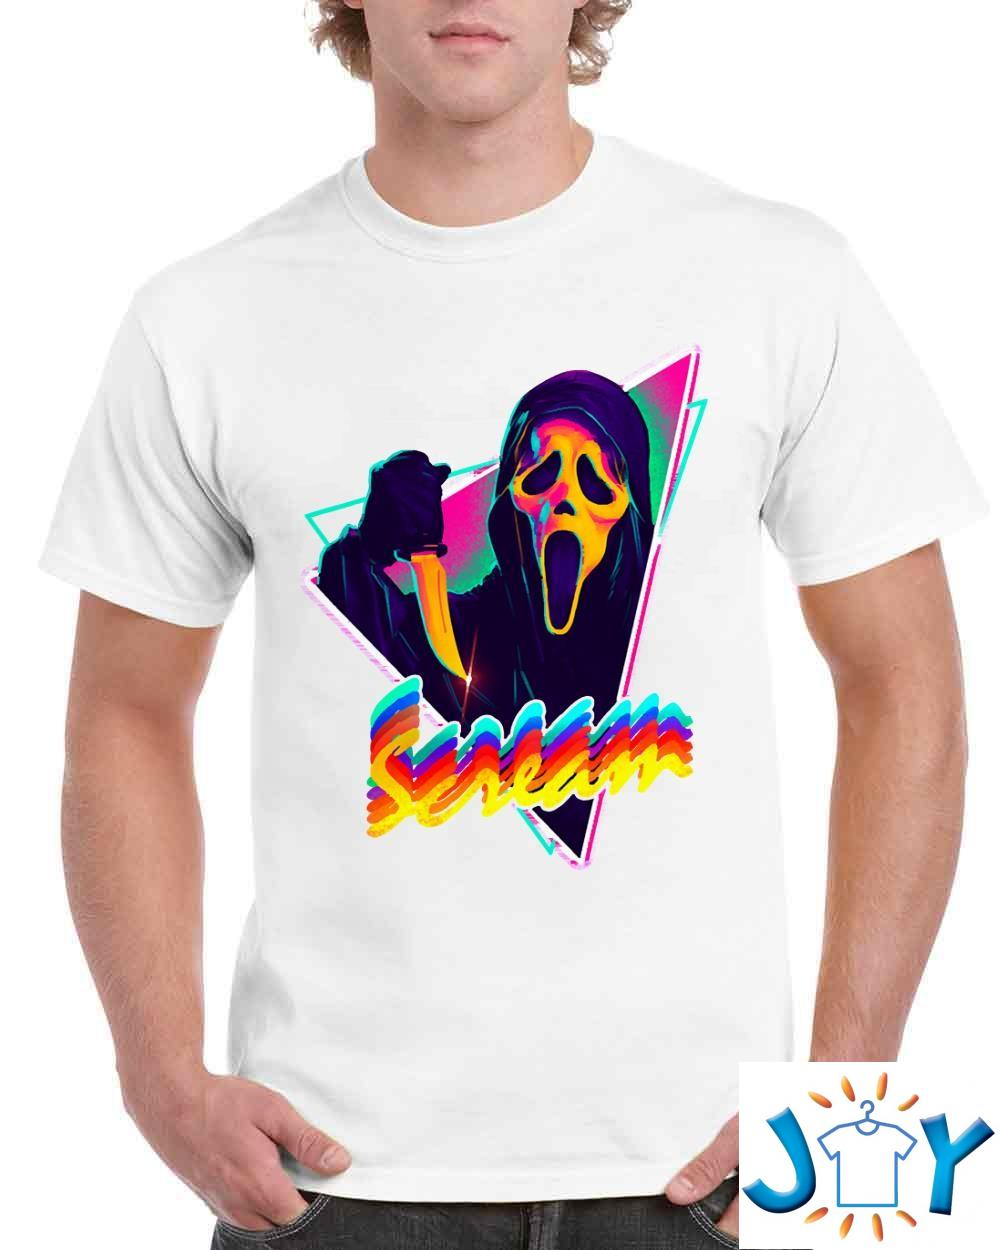 What's your favorite scary movie shirt